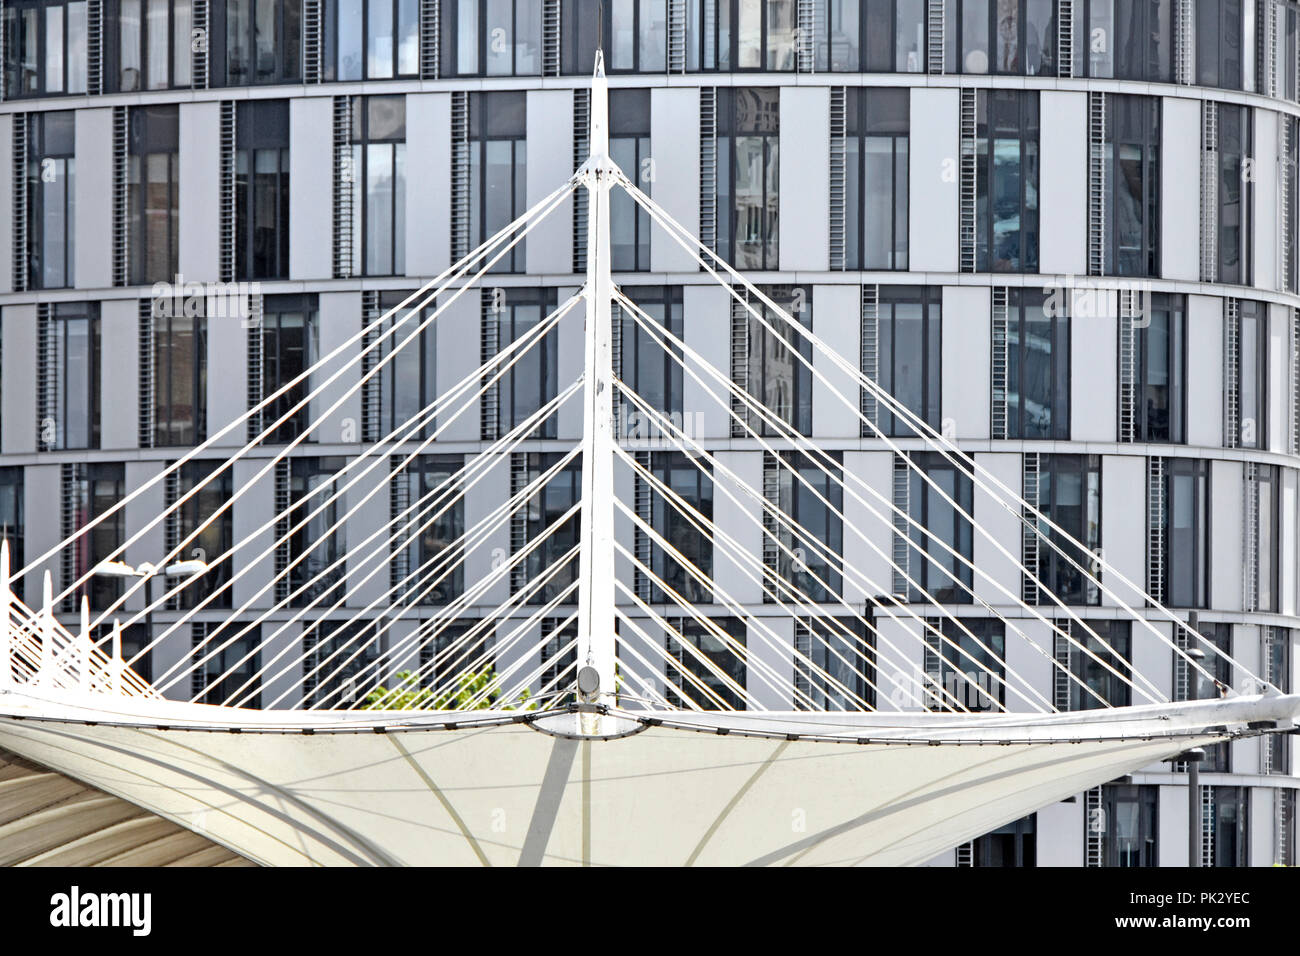 Conflicting shapes of rectangles & white triangles in two modern building structure design views in nearly greyscale abstract architecture pattern UK - Stock Image